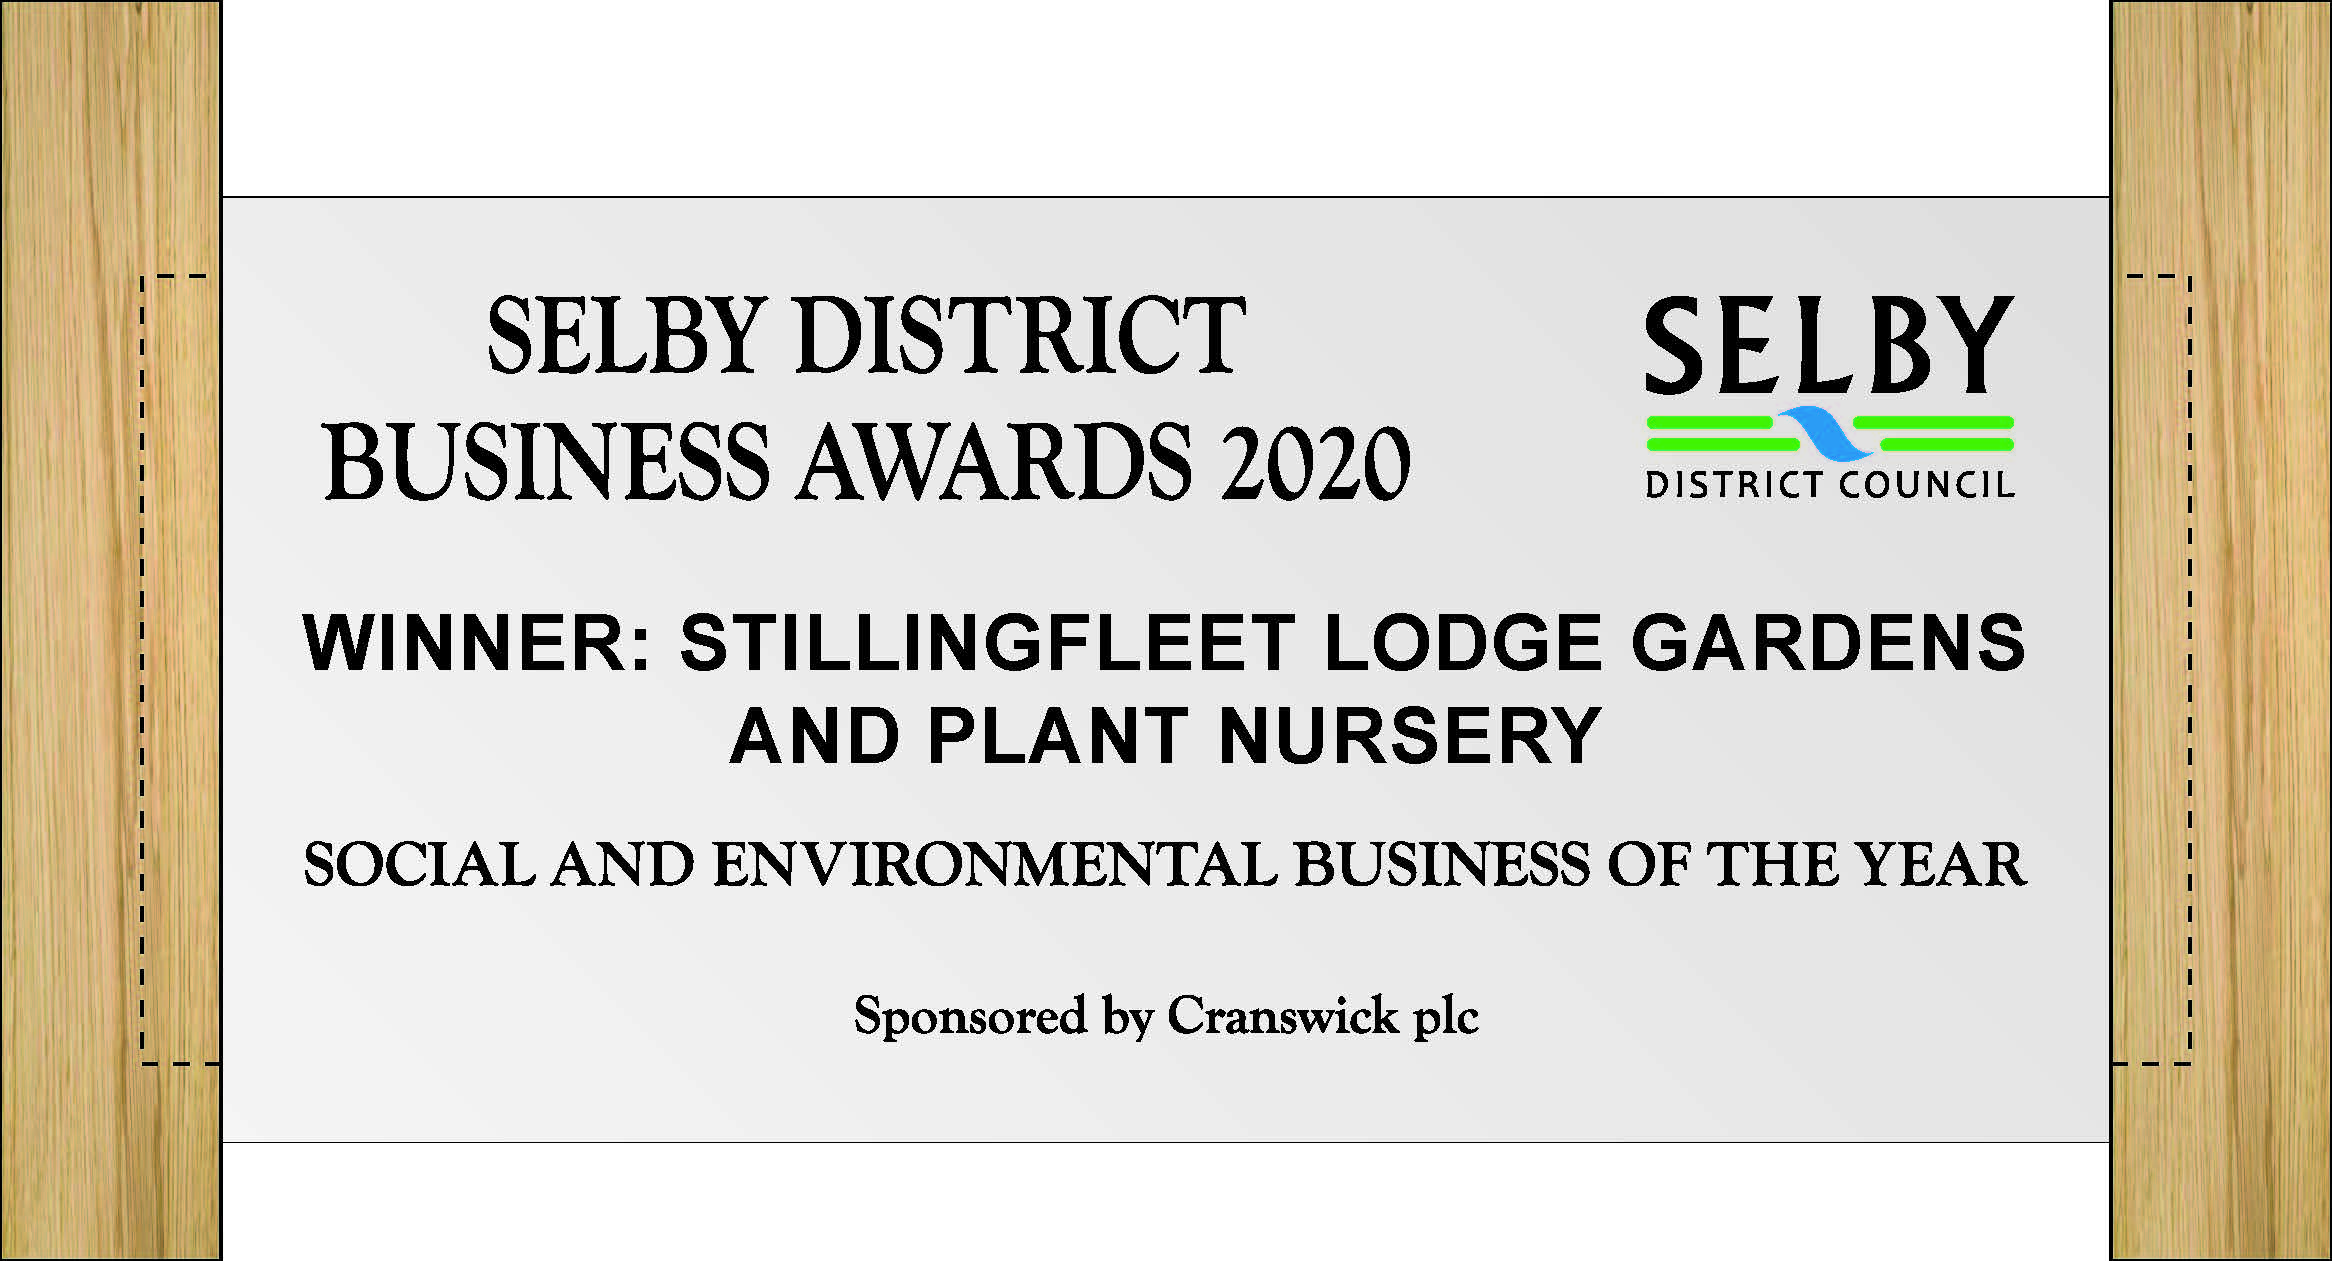 Selby Business Awards 2020 winner's certificate